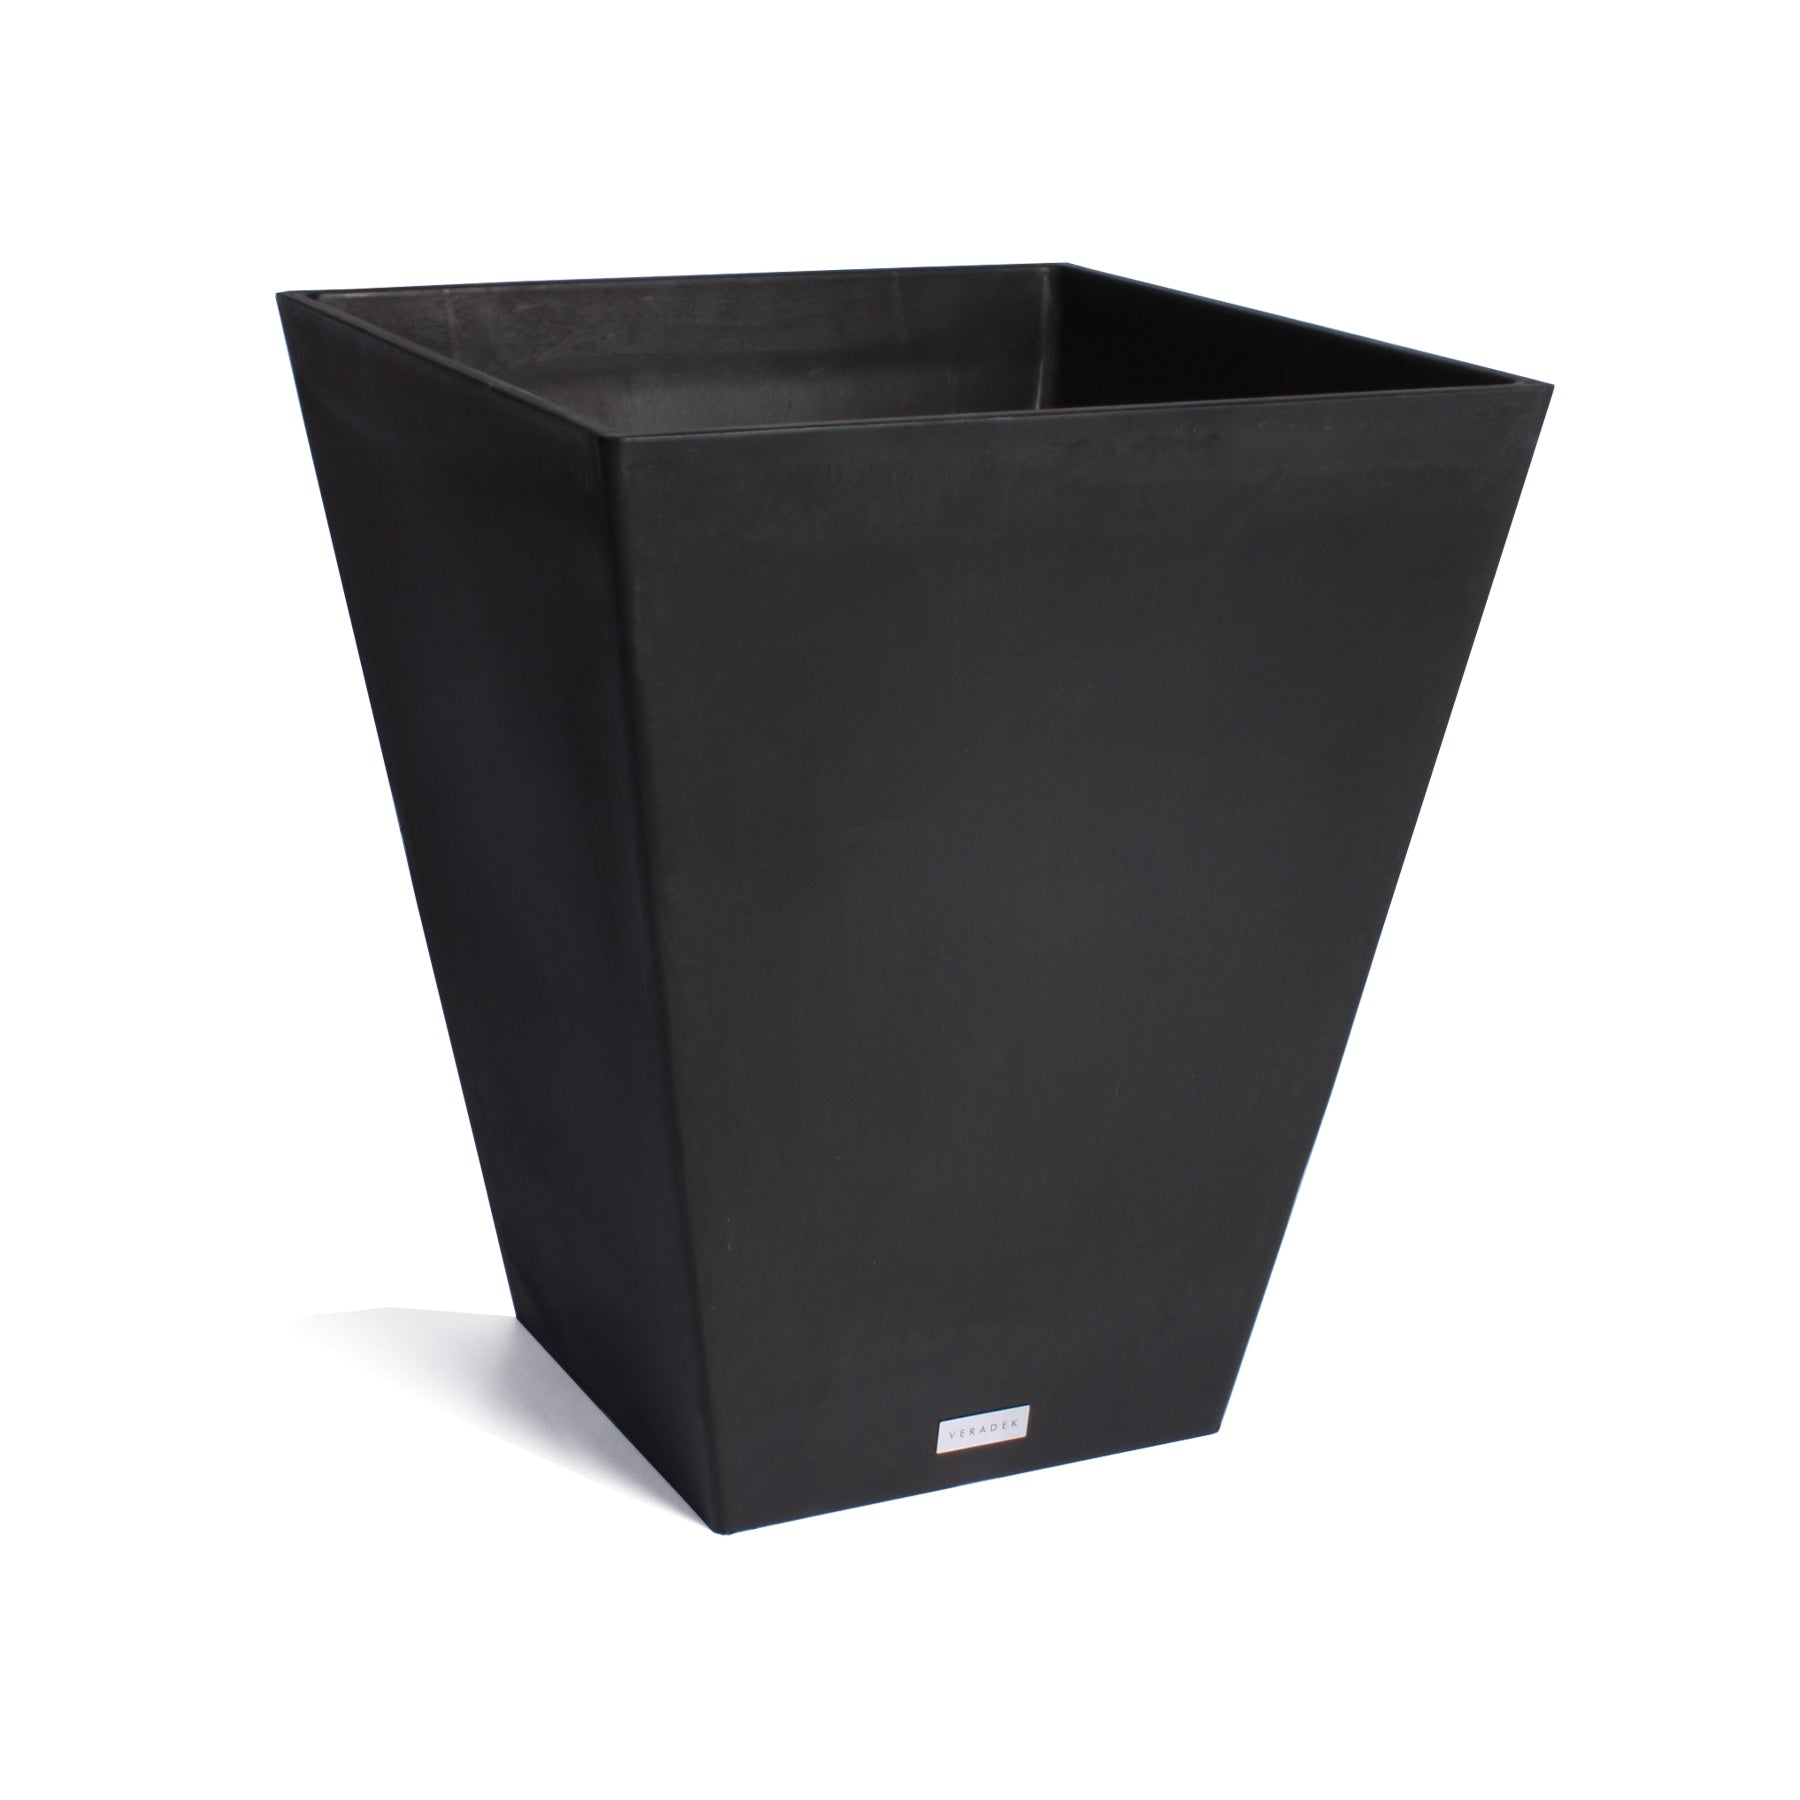 Veradek Nobleton Plastic Planter, Modern Planter, Light weight planter